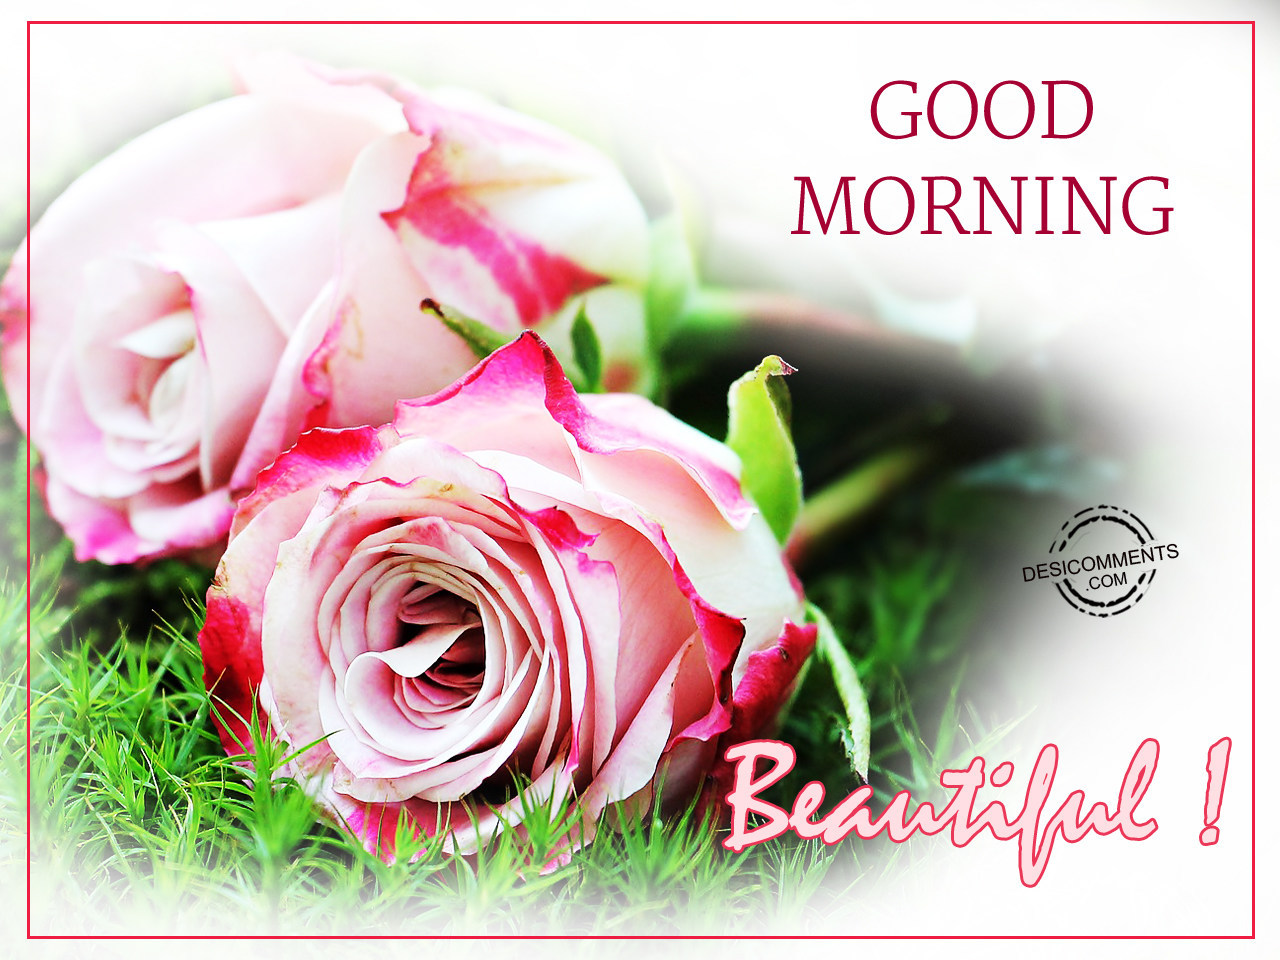 Good Morning Pictures Images Graphics Page 88